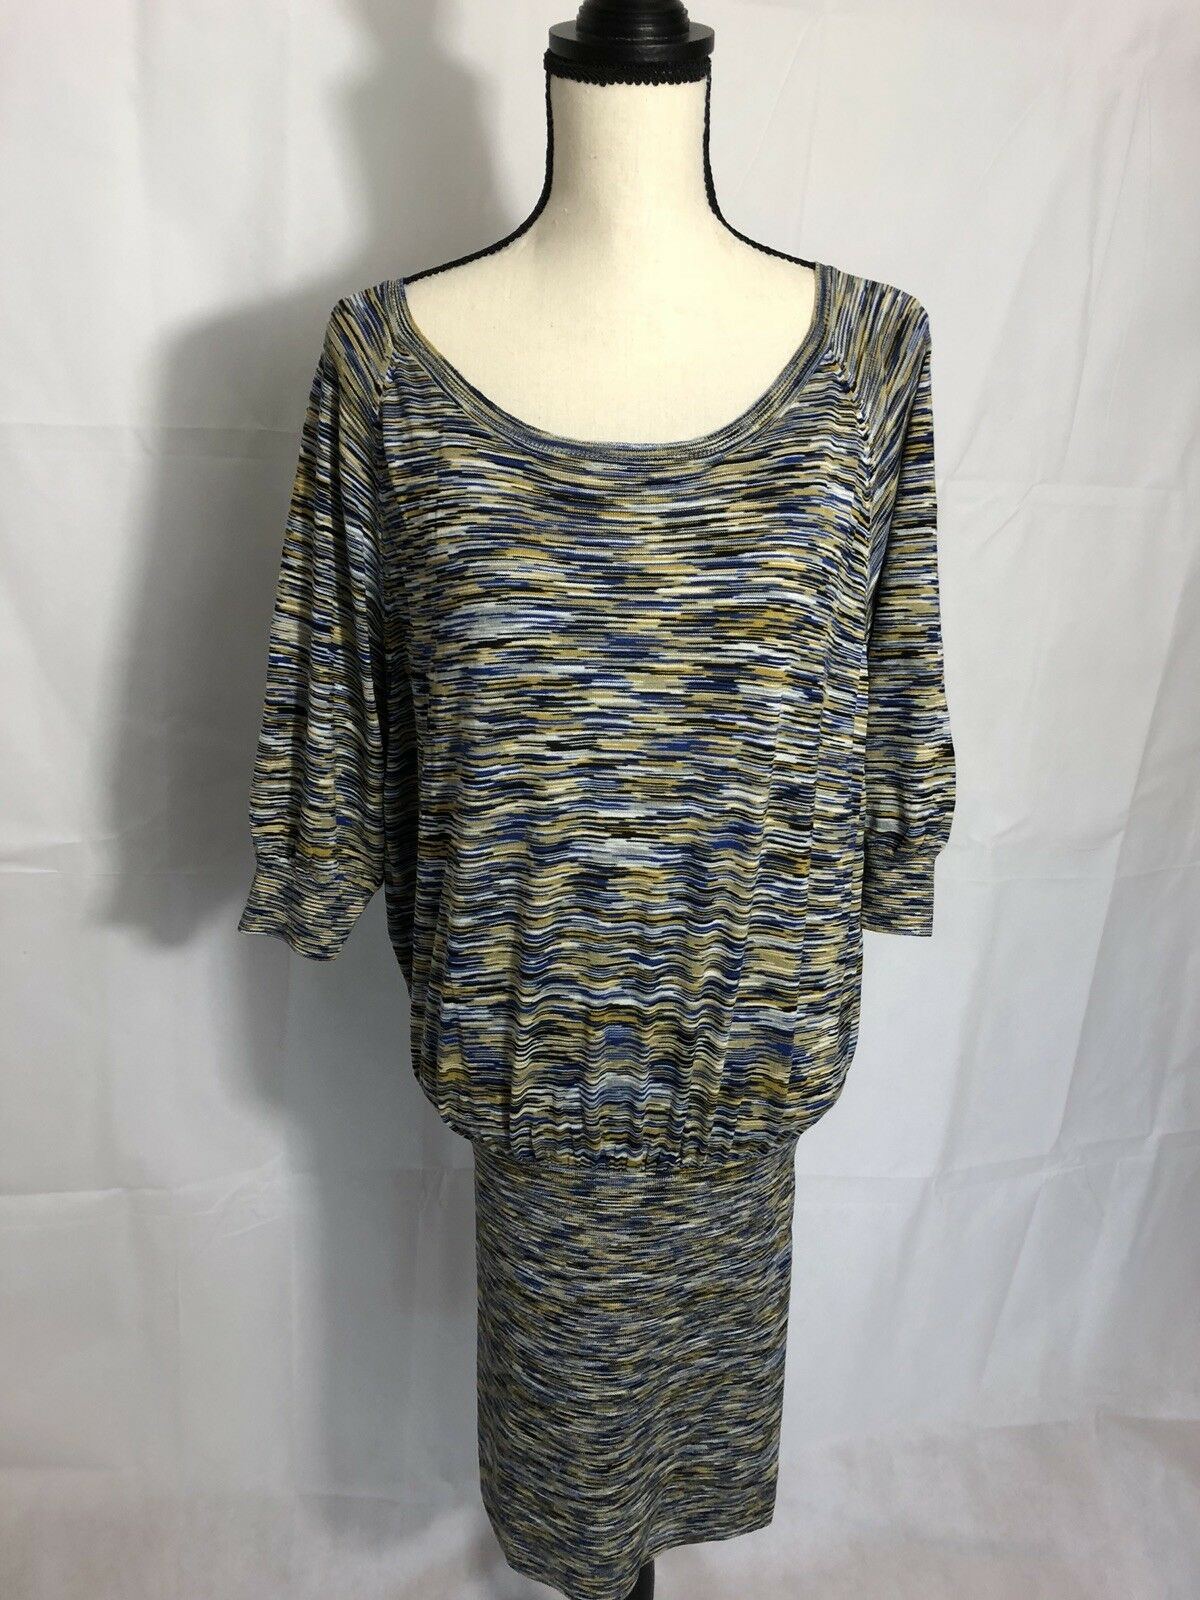 Sexy BCBG Maxazria Sweater Size XS blueE COLOR For Women